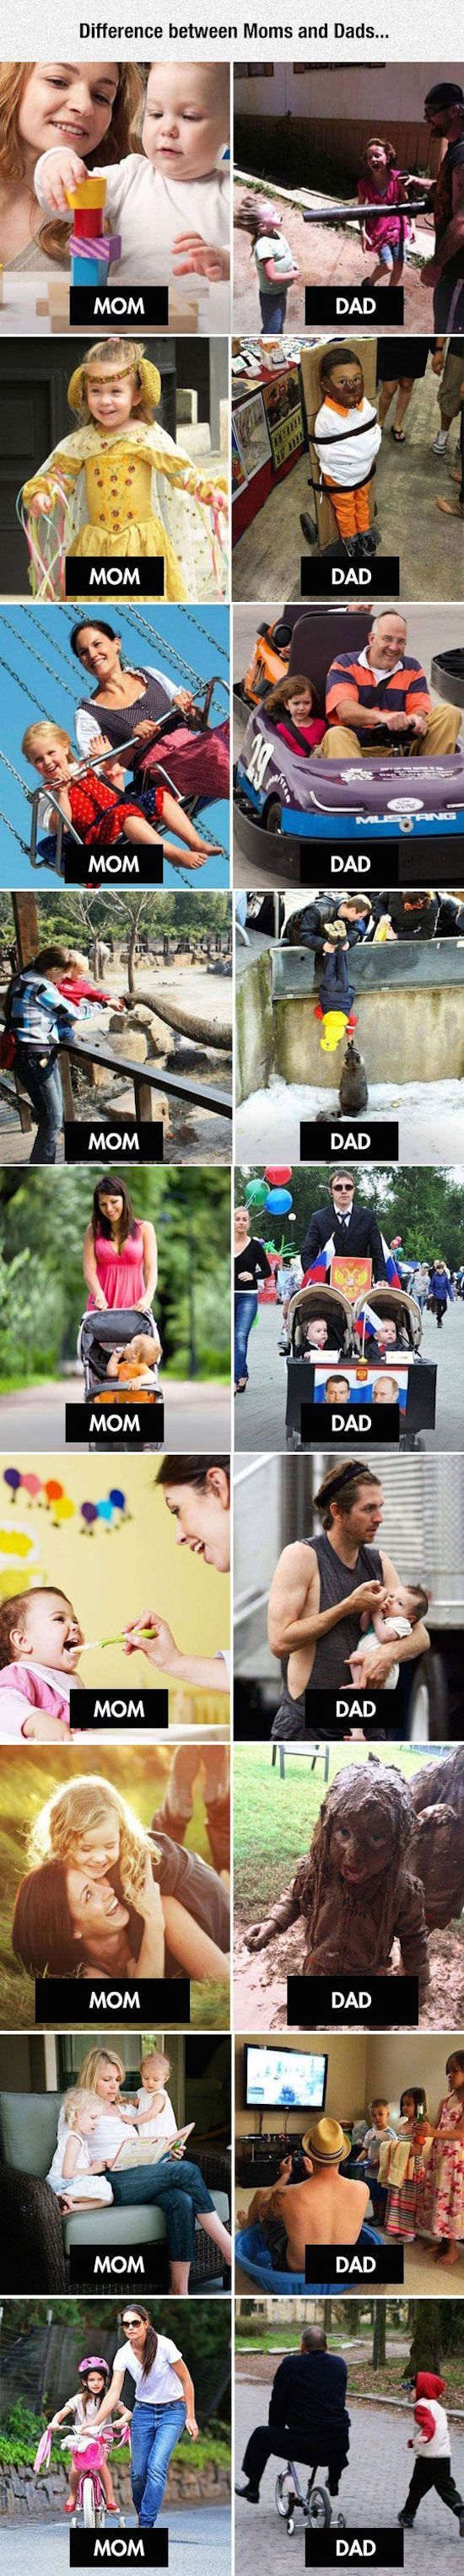 funny picture of differences between moms and dads